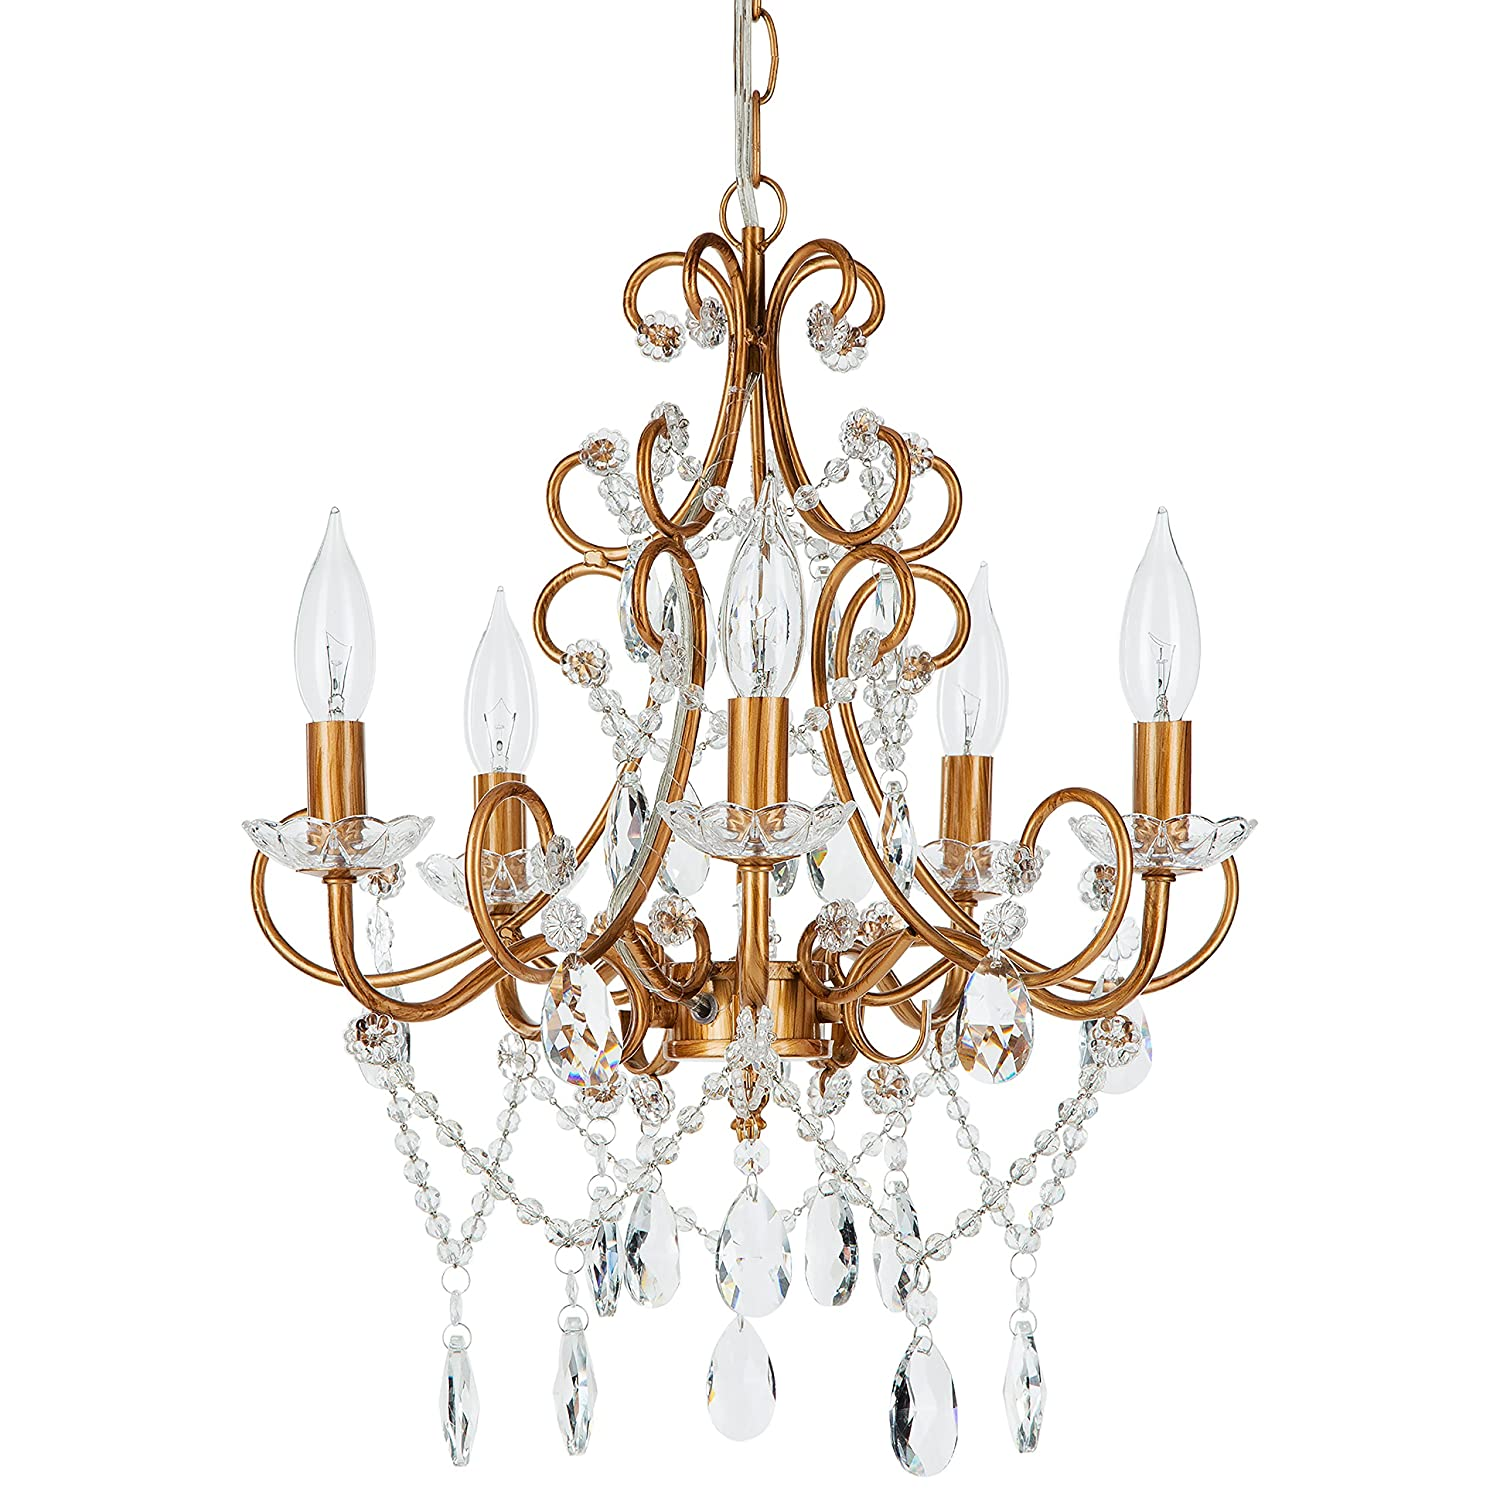 Theresa Vintage Gold Crystal Chandelier, 5 Light Swag Plug-In Glass Pendant Wrought Iron Ceiling Lighting Fixture Lamp